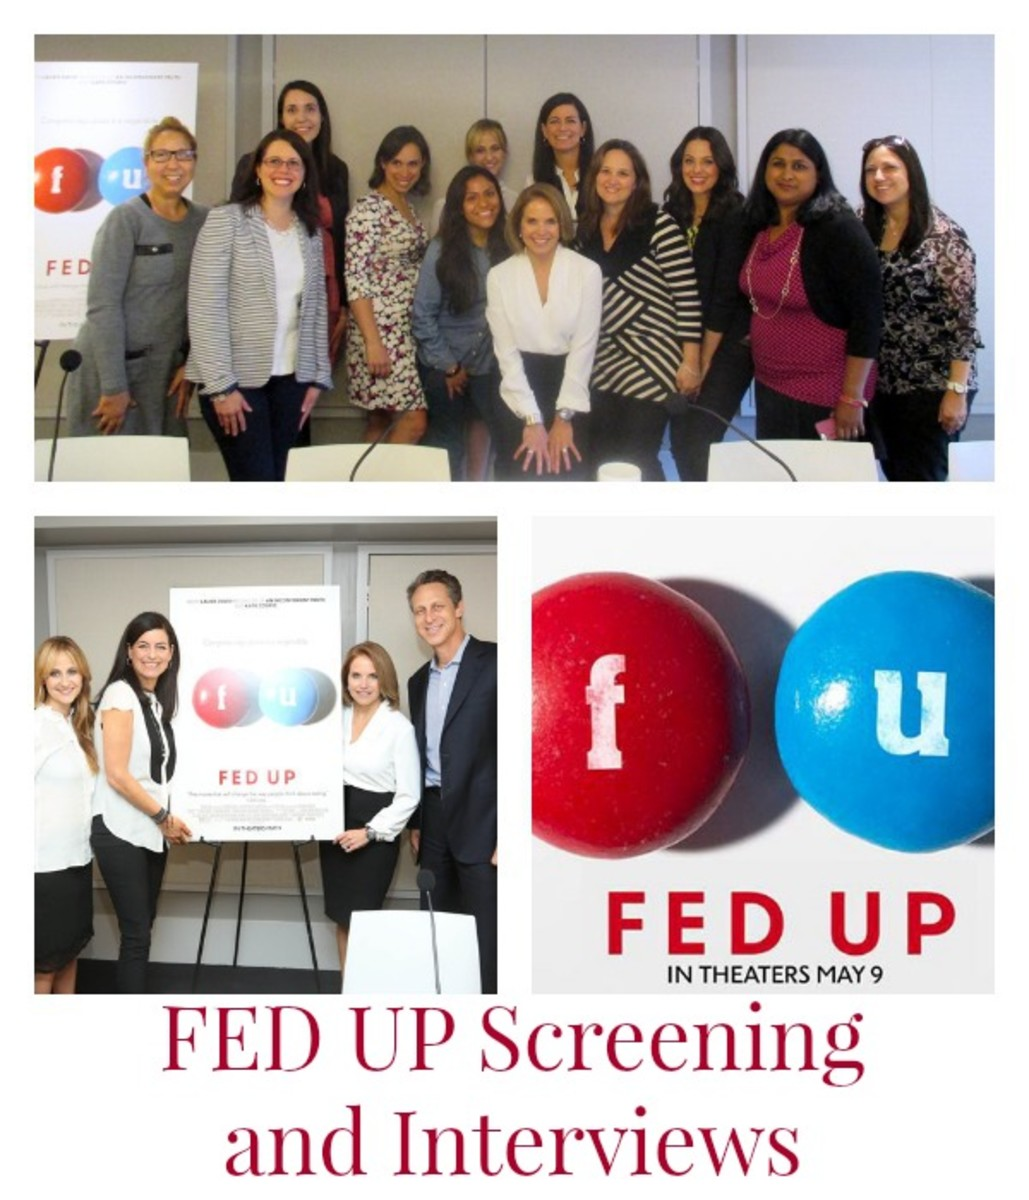 FED UP Screening and Interviews